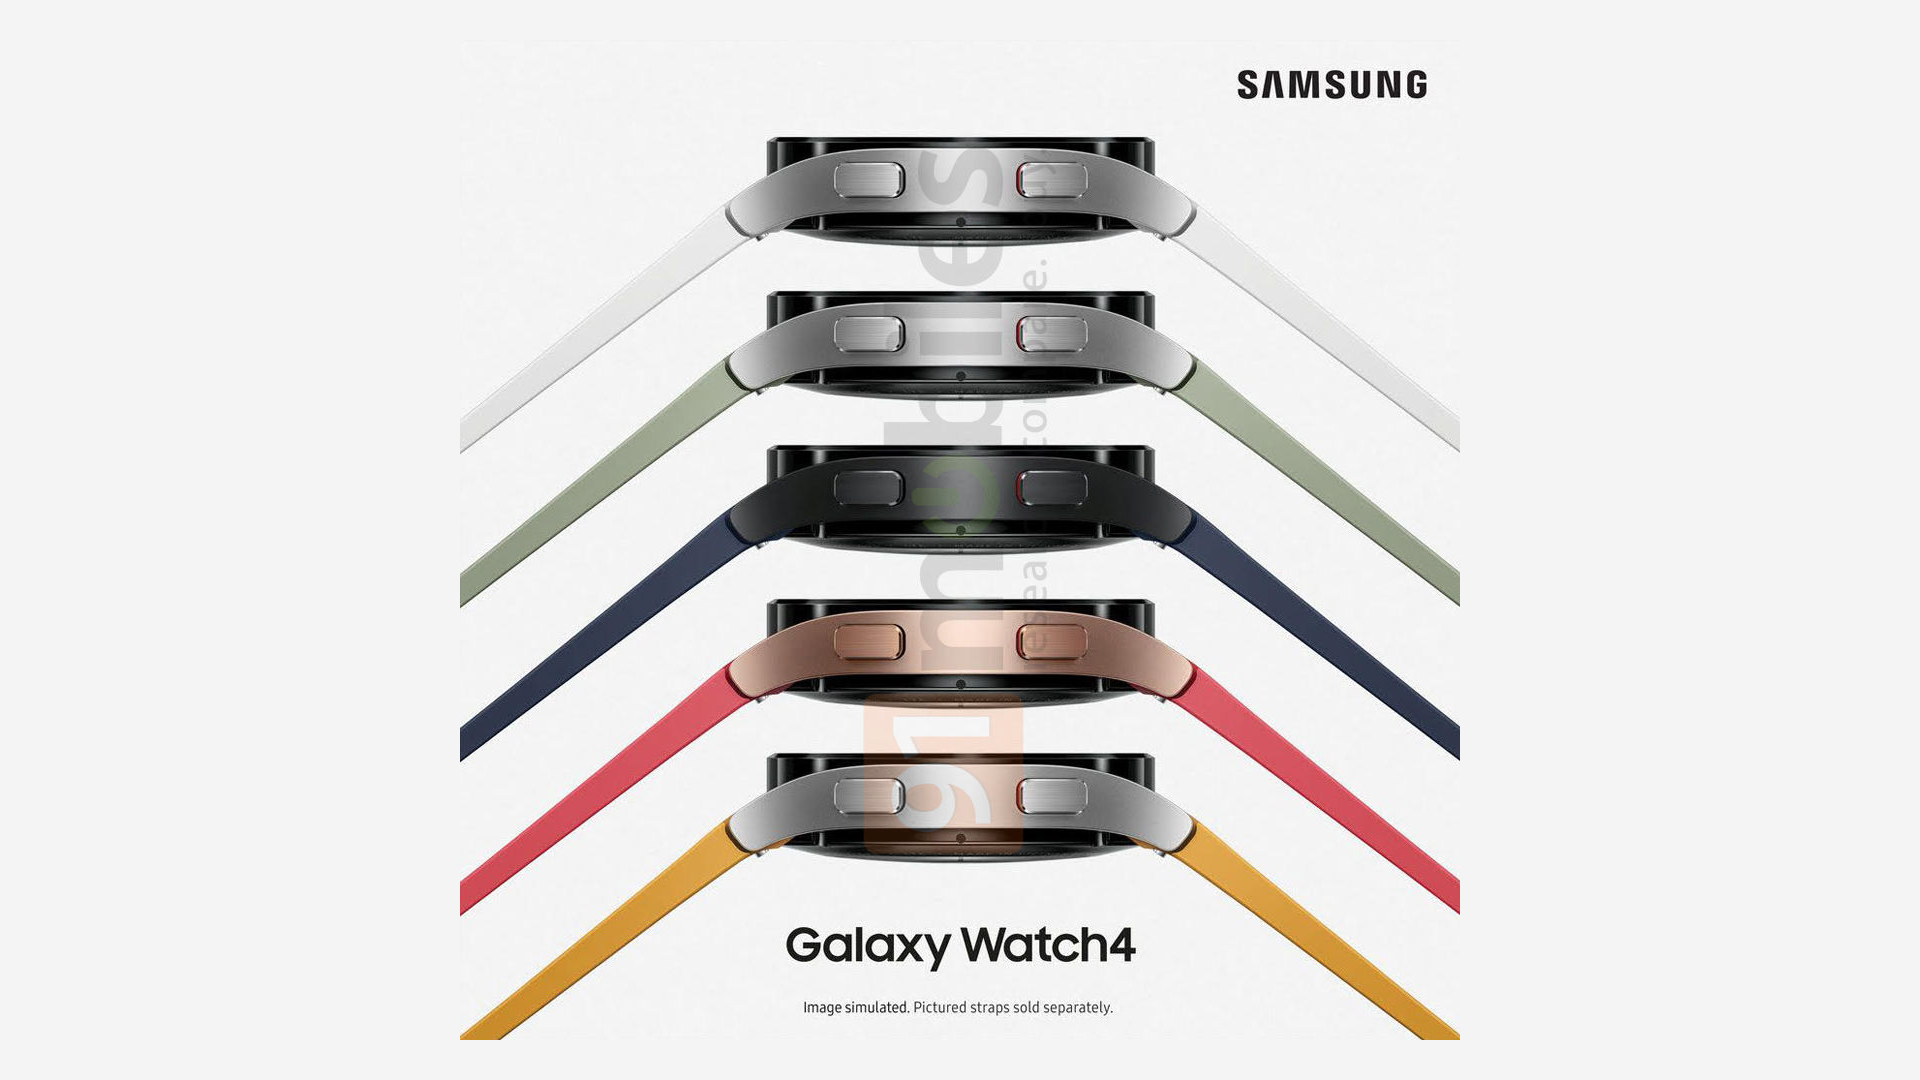 A leaked poster of the Galaxy Watch 4